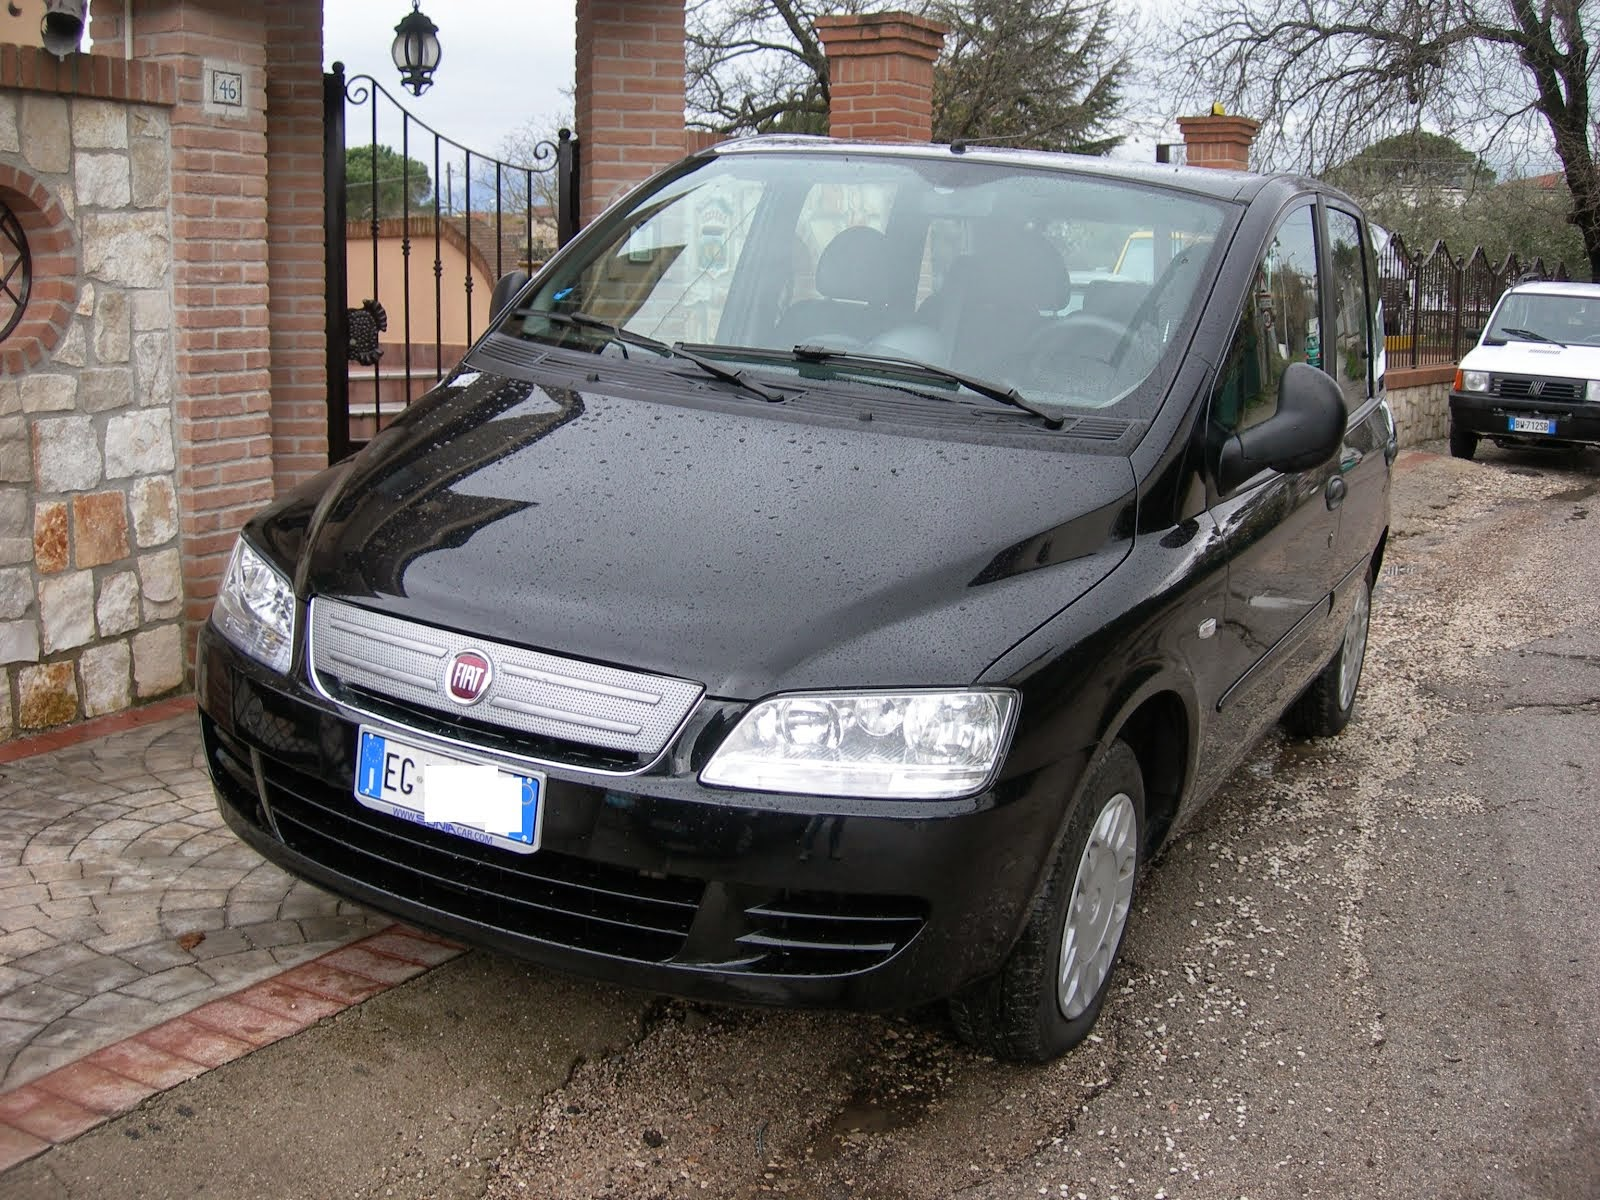 Fiat Multipla Natural Power 1.6 Metano Anno 2011 dinamyc